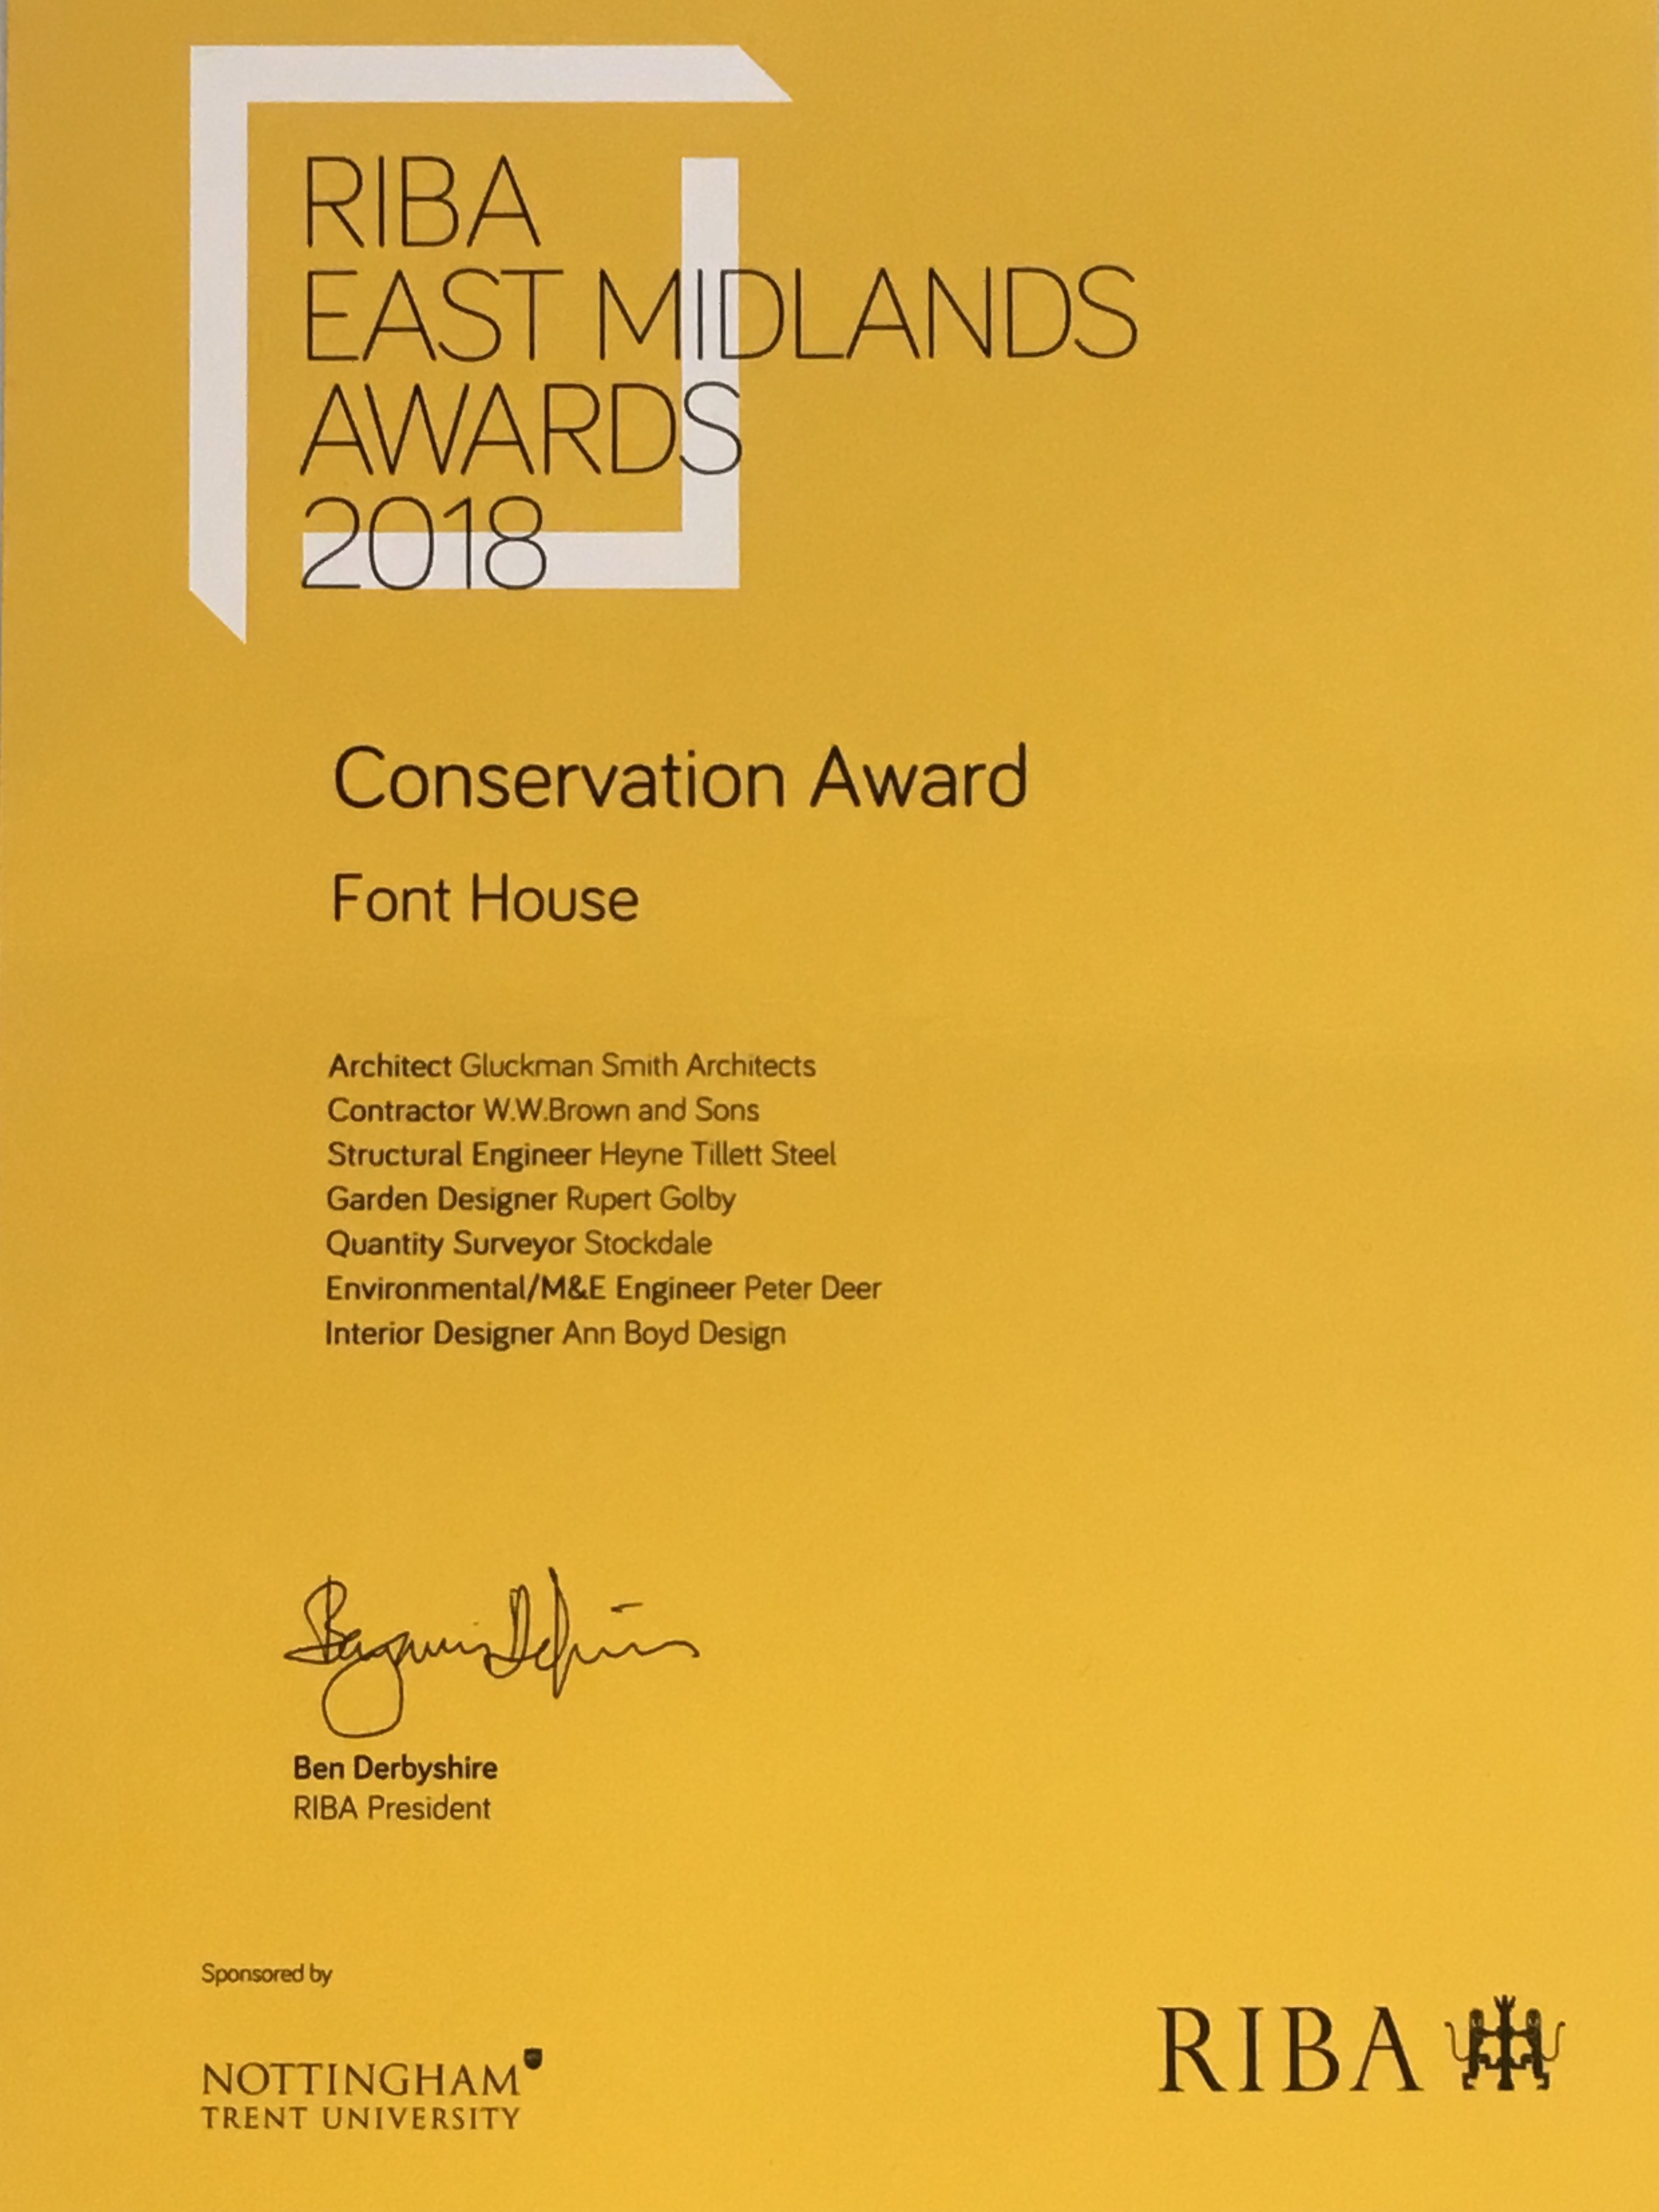 Font House by Gluckman Smith Architects won the RIBA East Midlands Conservation Award 2018